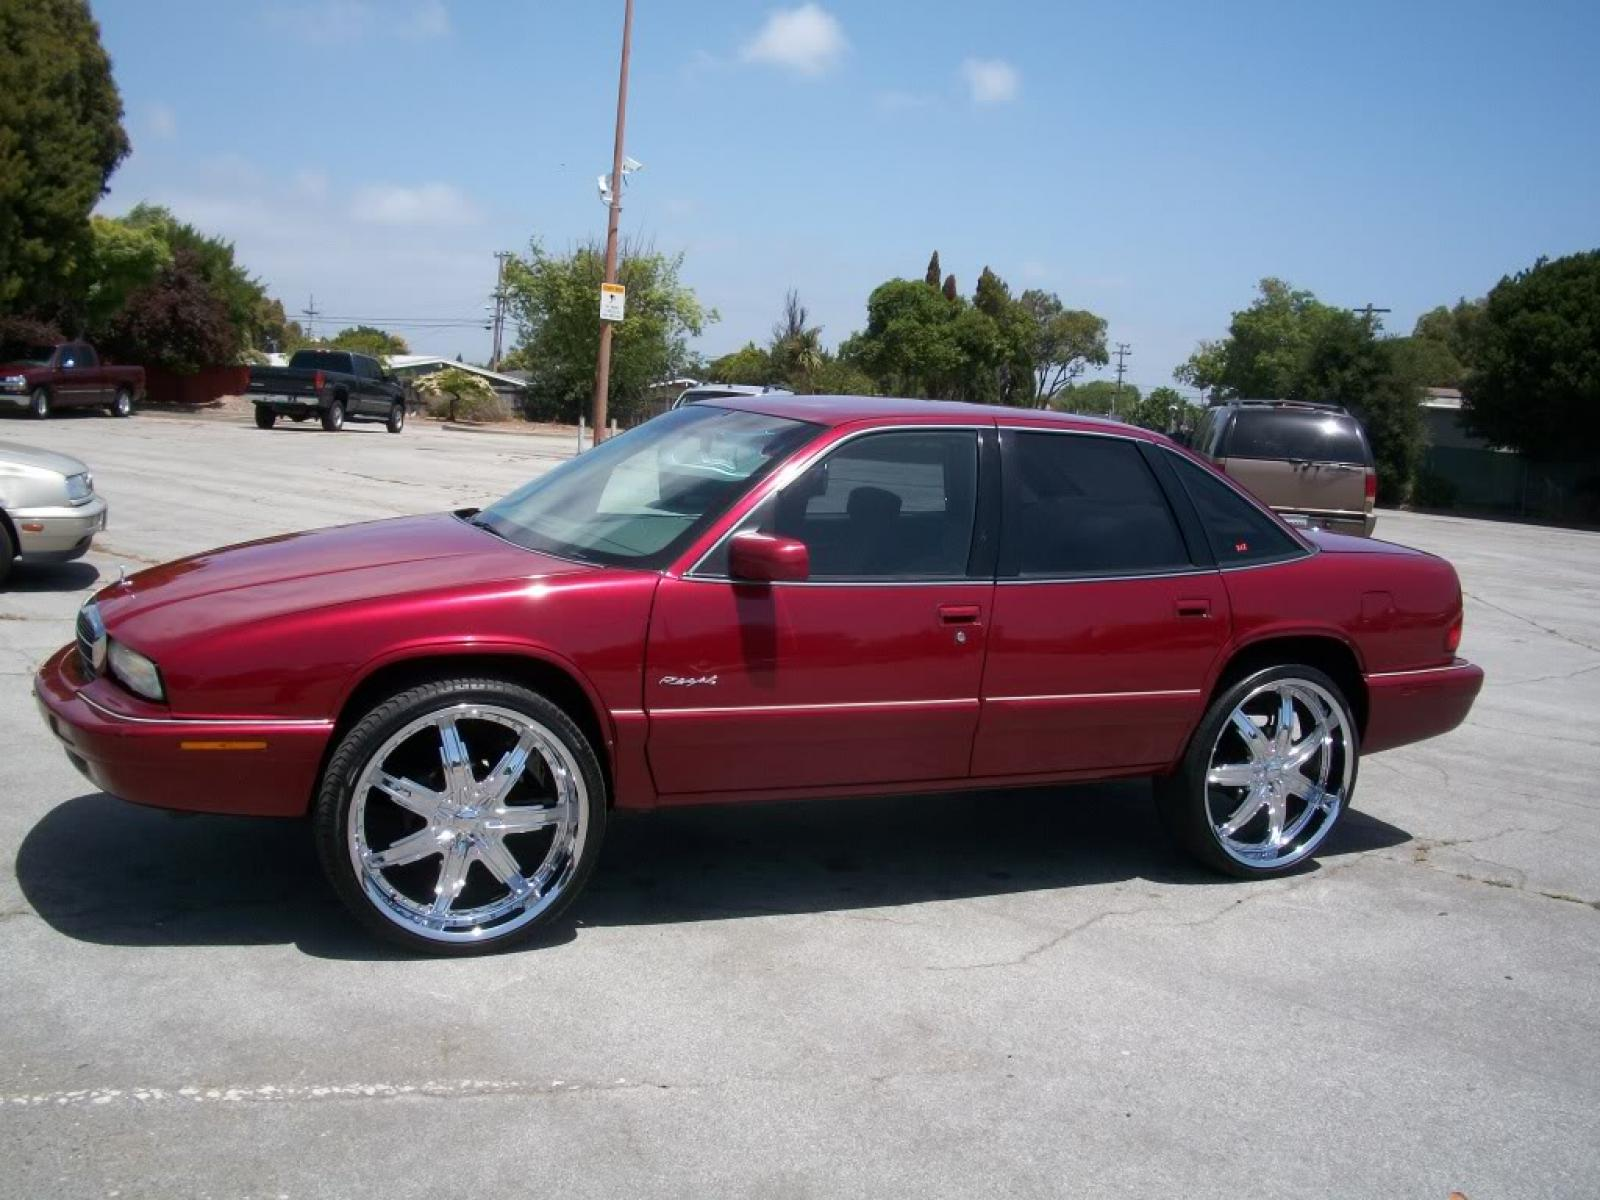 1995 Buick Regal Information And Photos Zombiedrive